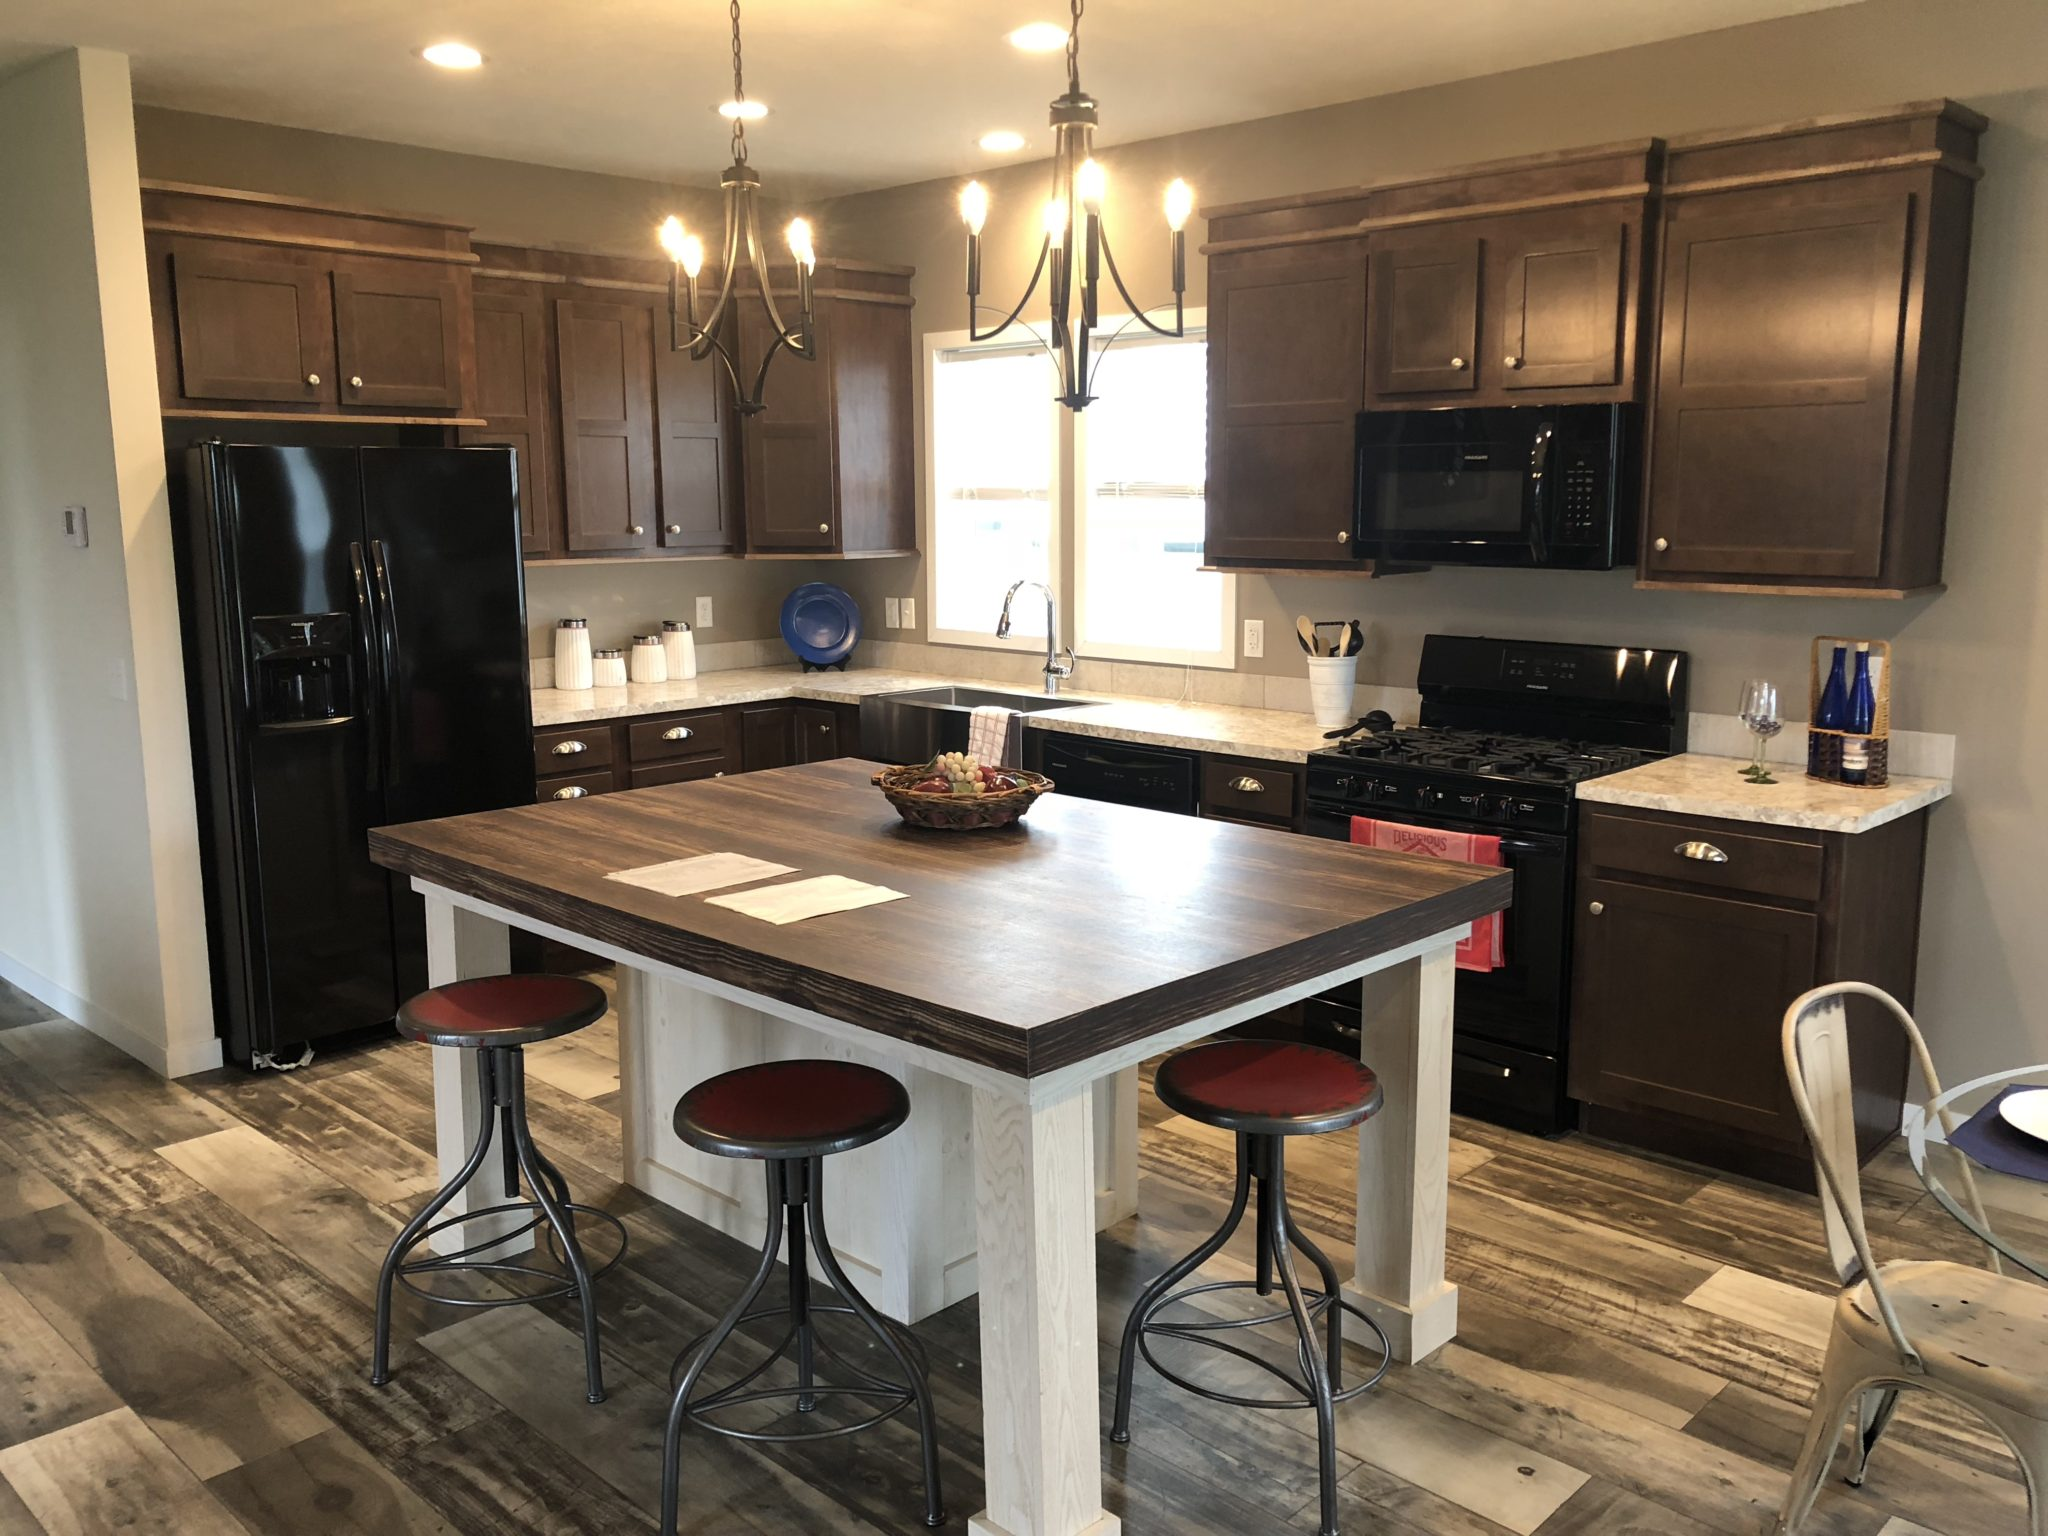 The Garfield custom modular home dine-in kitchen